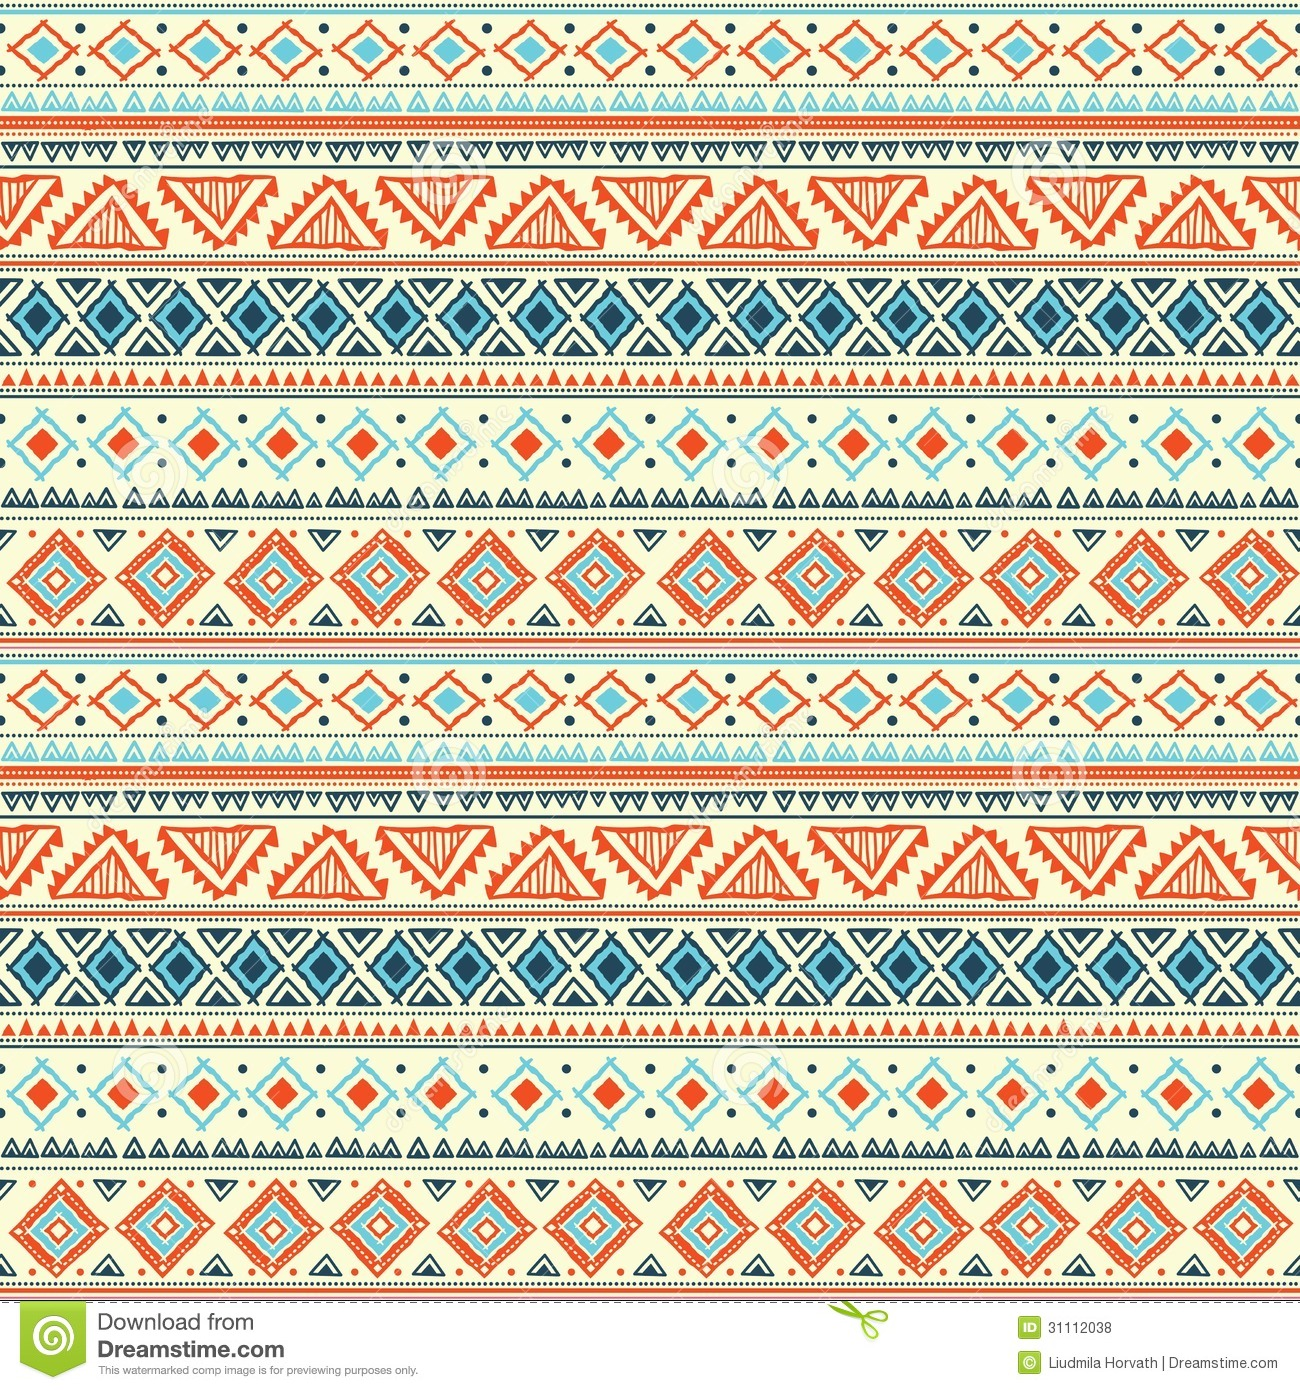 Cute Tribal Print Wallpaper Abstract Tribal Pattern Stock Vector Illustration Of